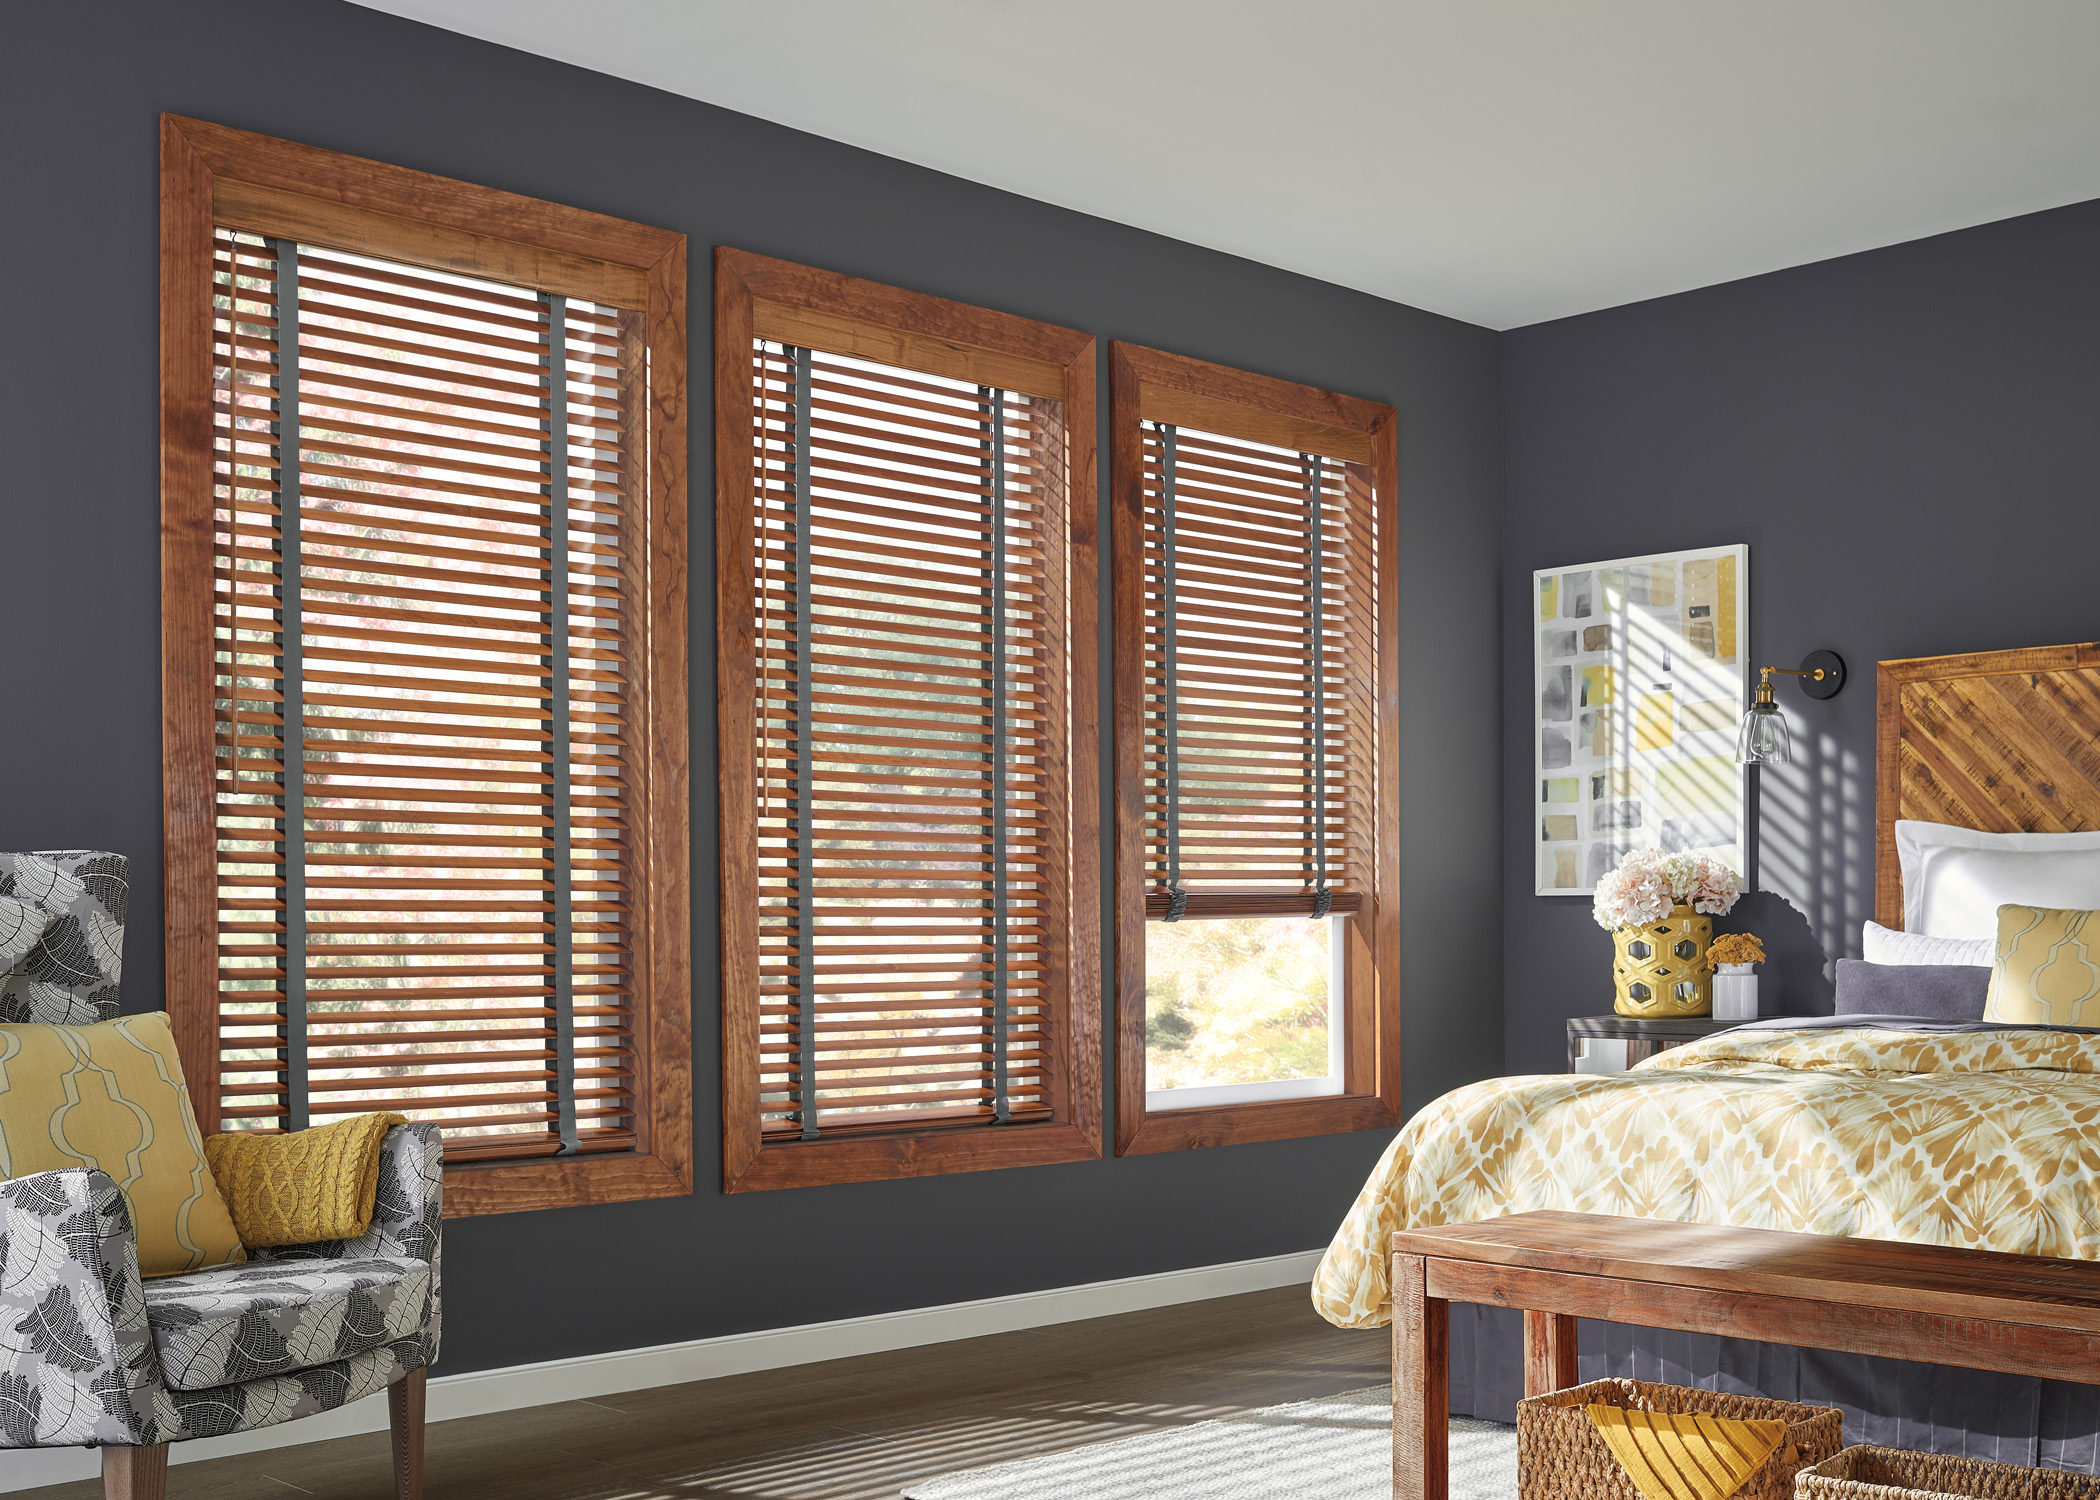 Graber_Wood Blinds_Bedroom1.jpg